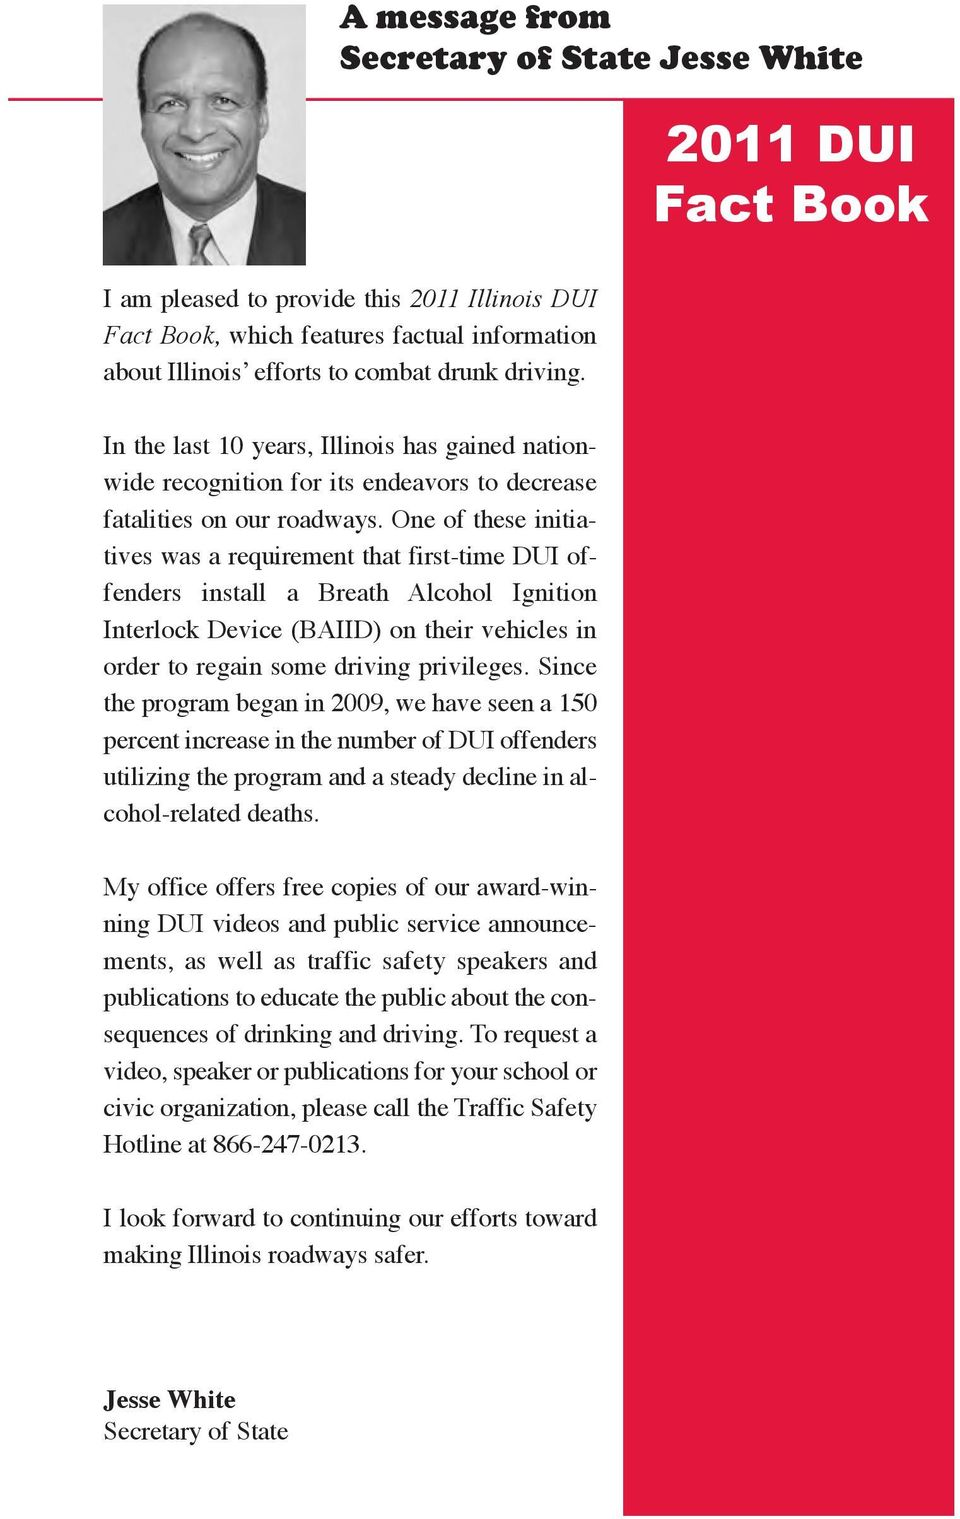 One of these initiatives was a requirement that first-time DUI offenders install a Breath Alcohol Ignition Interlock Device (BAIID) on their vehicles in order to regain some driving privileges.